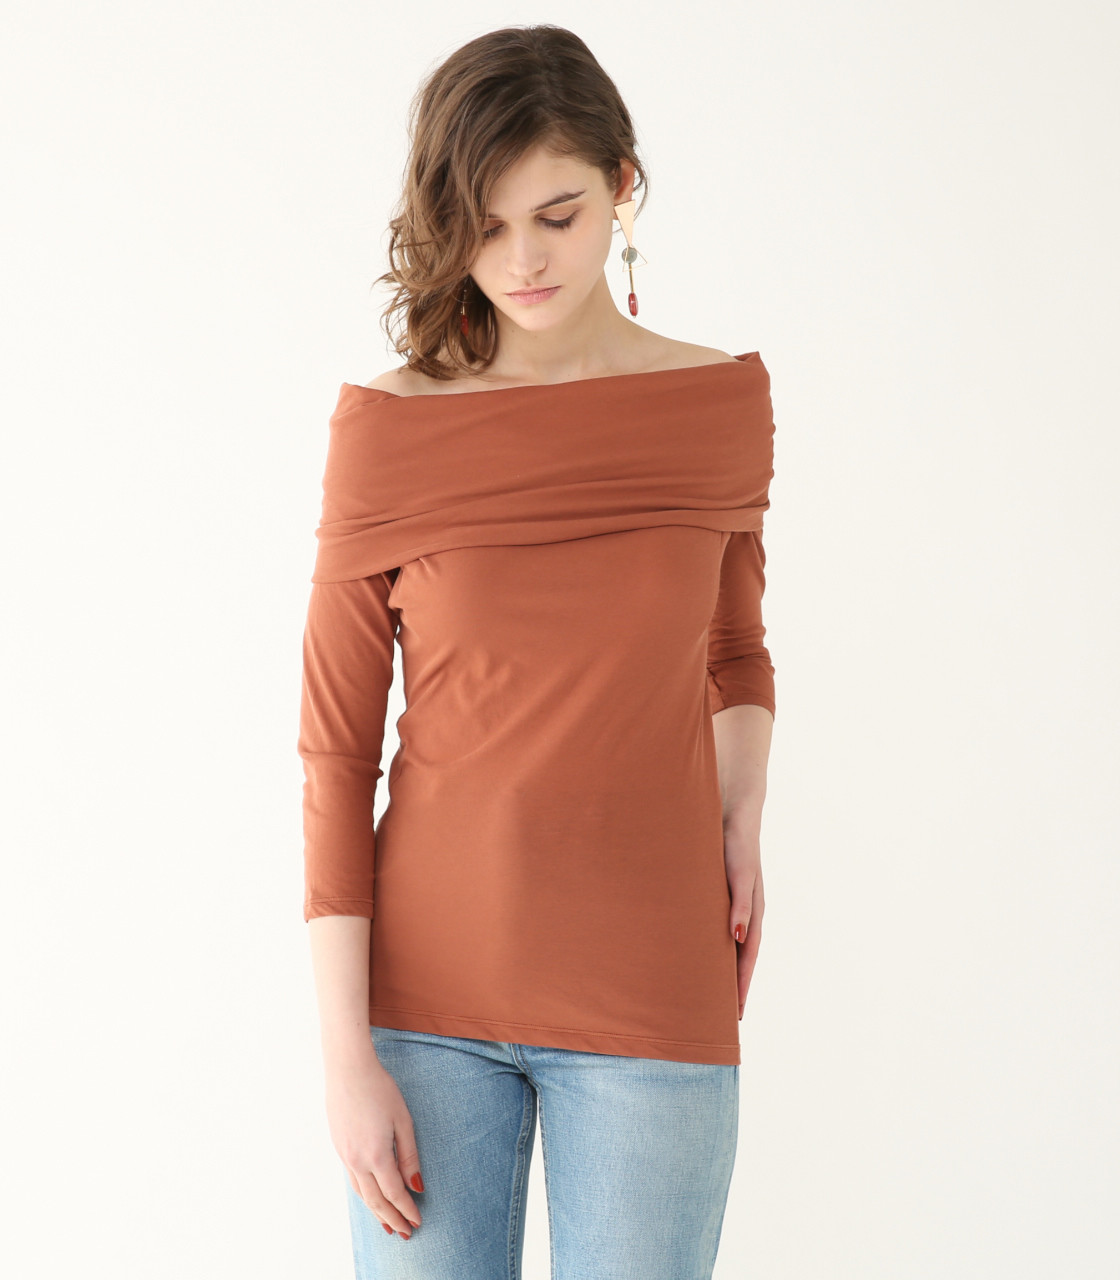 Rabatine collar cut TOPS